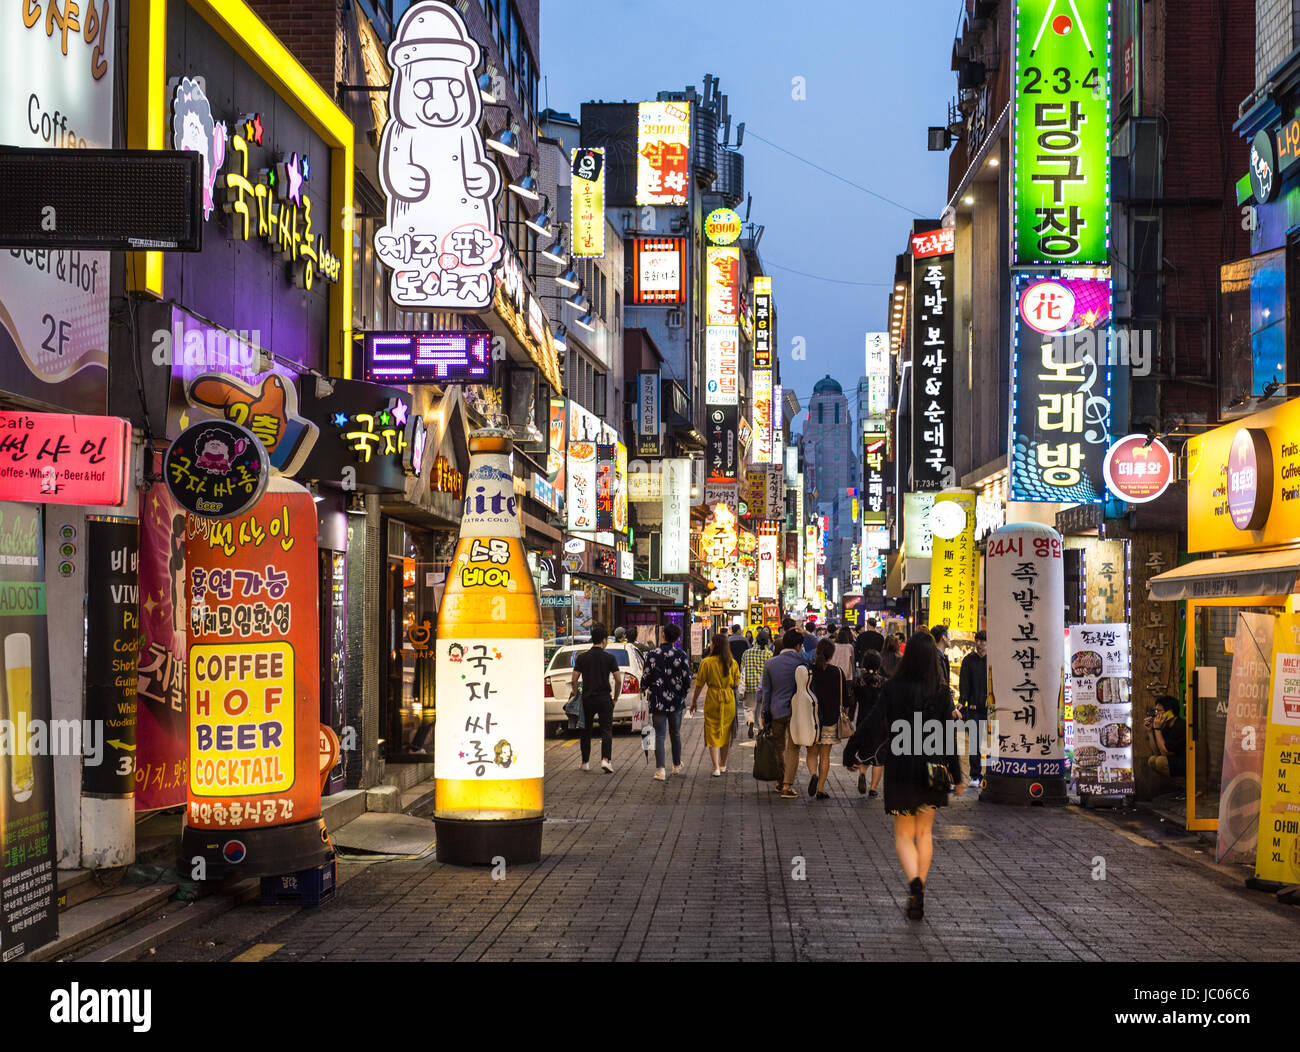 SEOUL, SOUTH KOREA - MAY 13: People wander in the busy streets of the Insadong entertainment district lined with - Stock Image